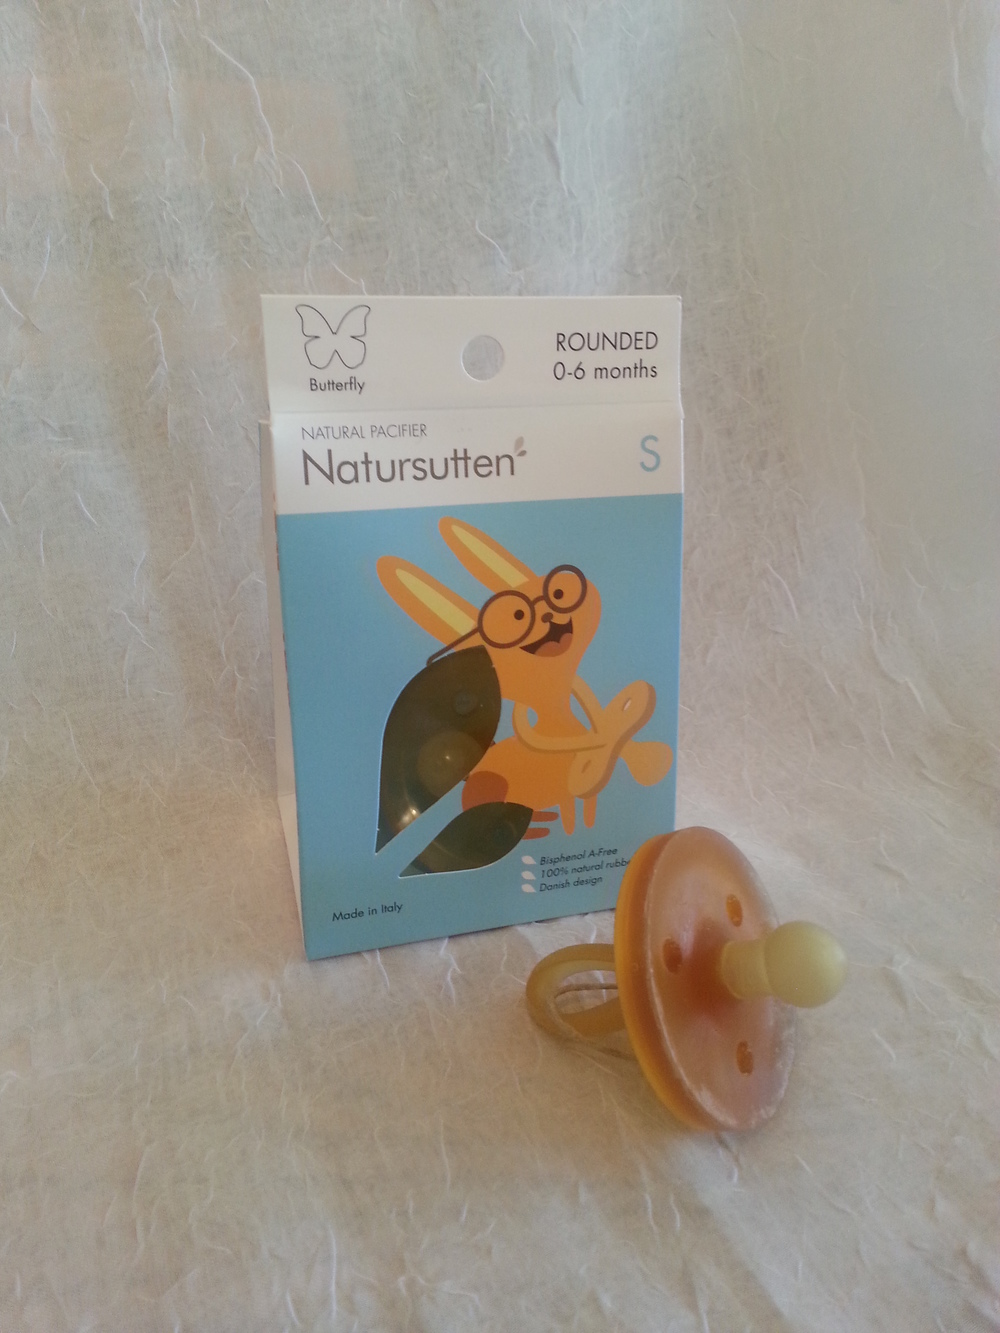 Natursutten Pacifier -Round Nipple size small    $8.95    Wants 1 PURCHASED